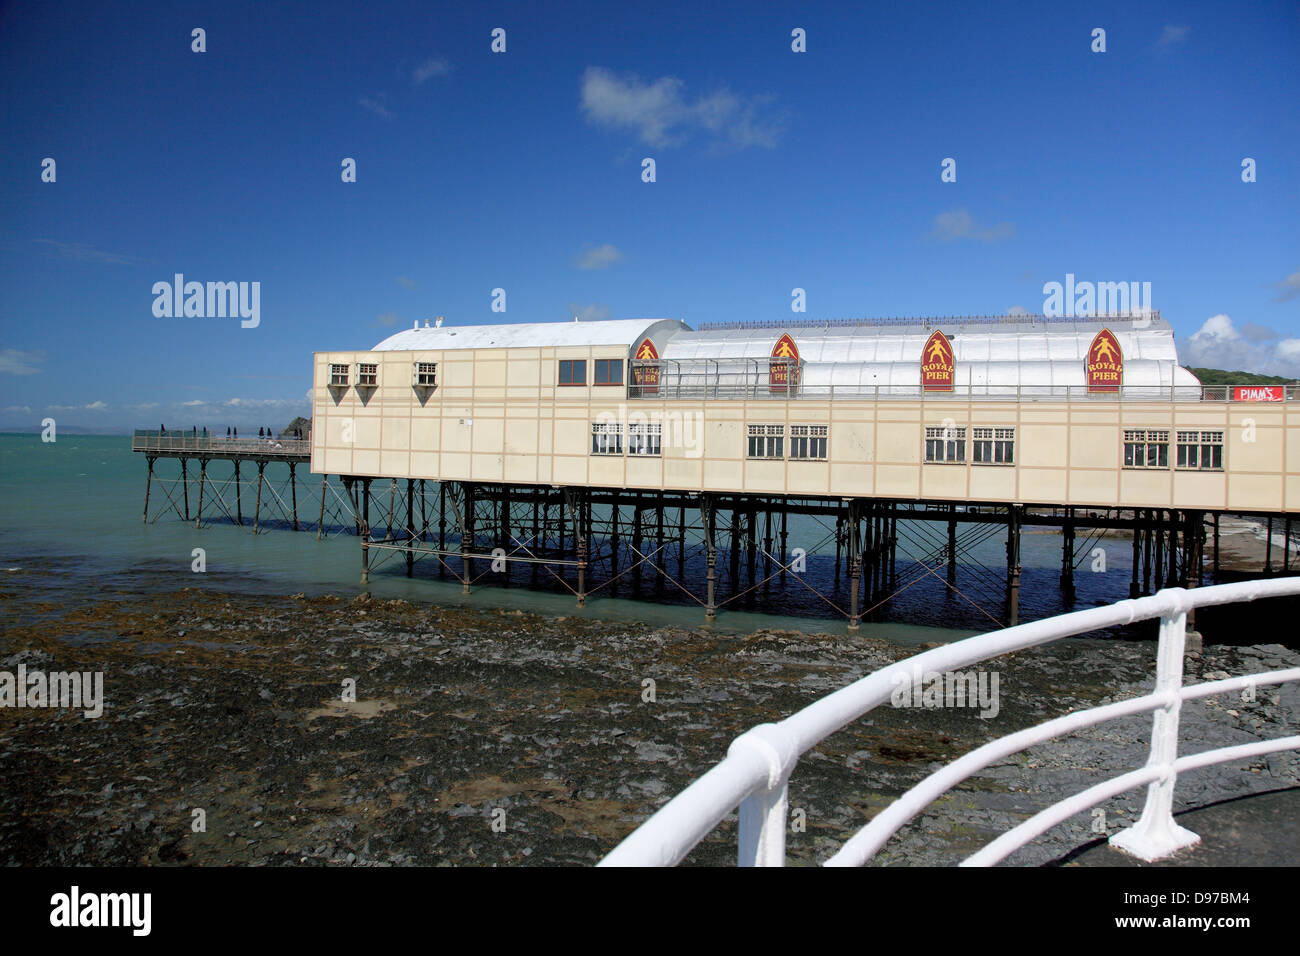 The Pier at Aberystwyth built in 1865 but much shortened by storm damage. - Stock Image